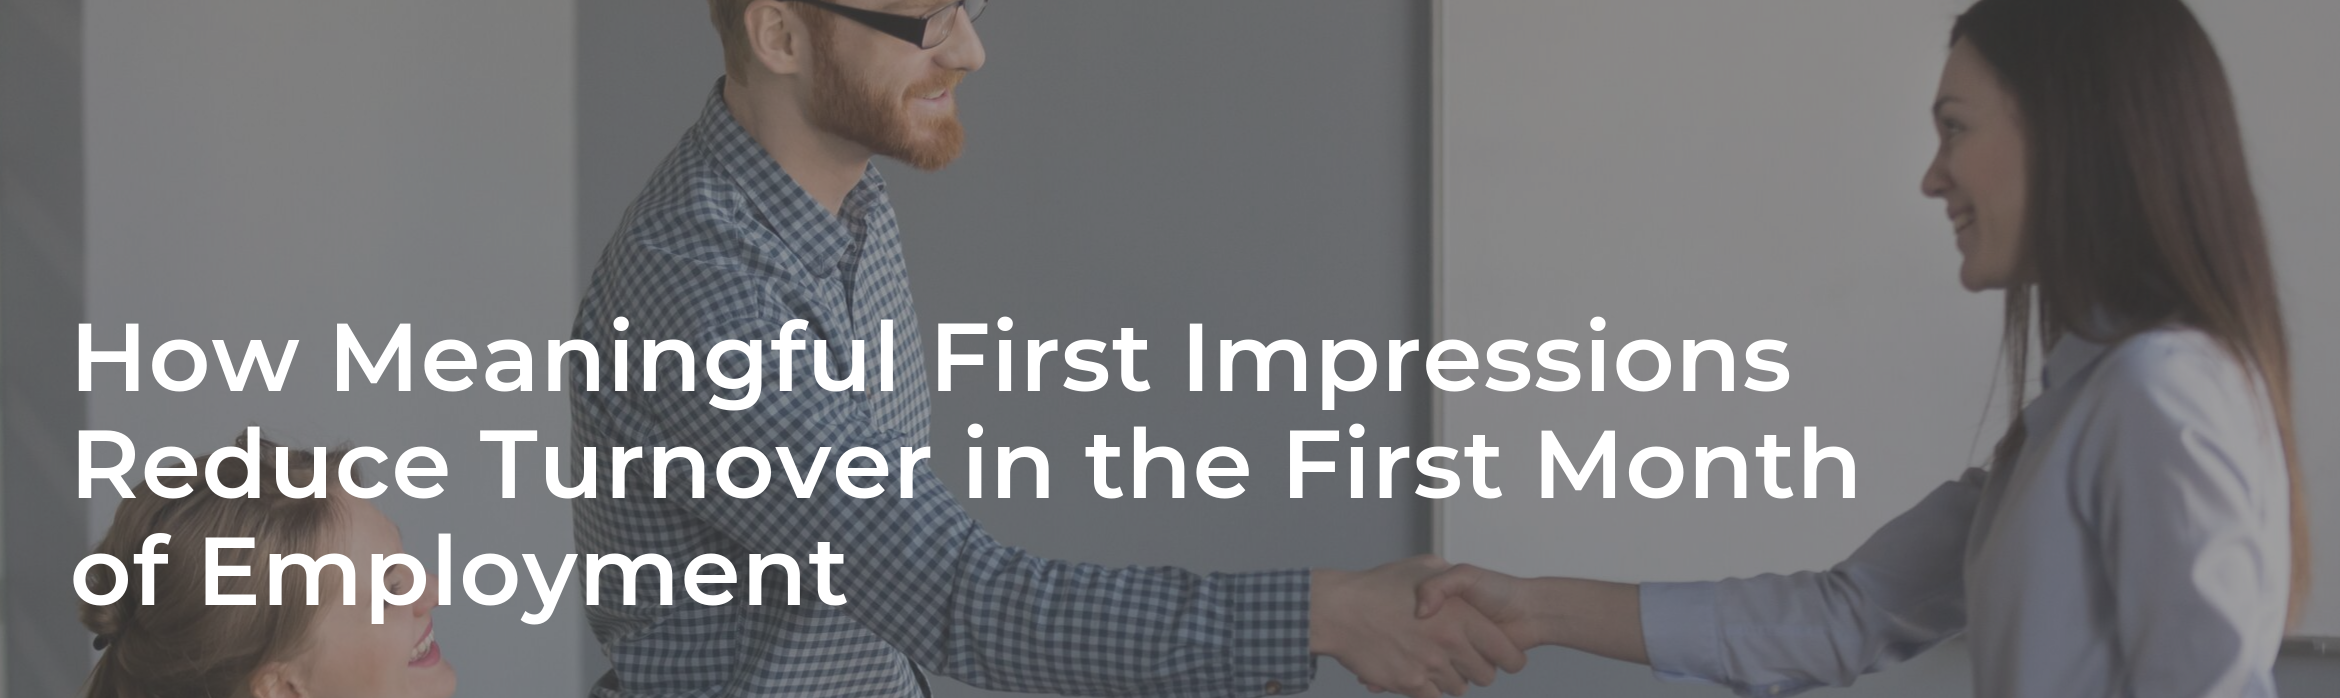 How Meaningful First Impressions Reduce Turnover in the First Month of Employment